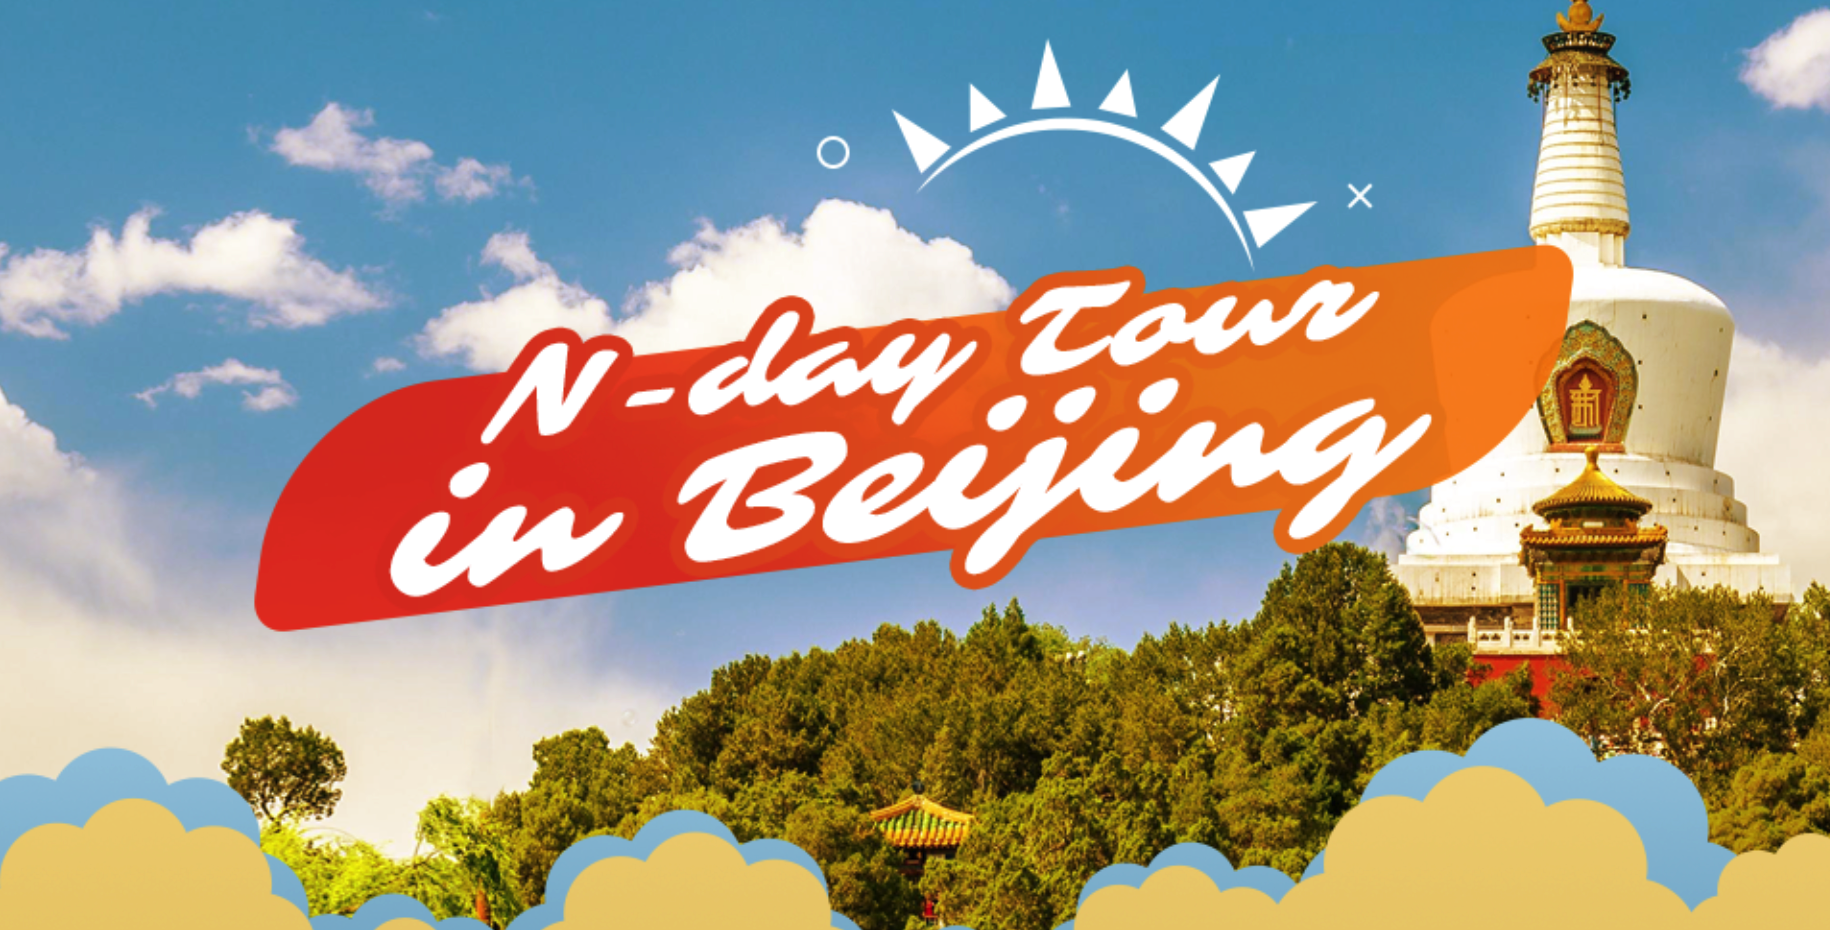 N-day tour in Beijing